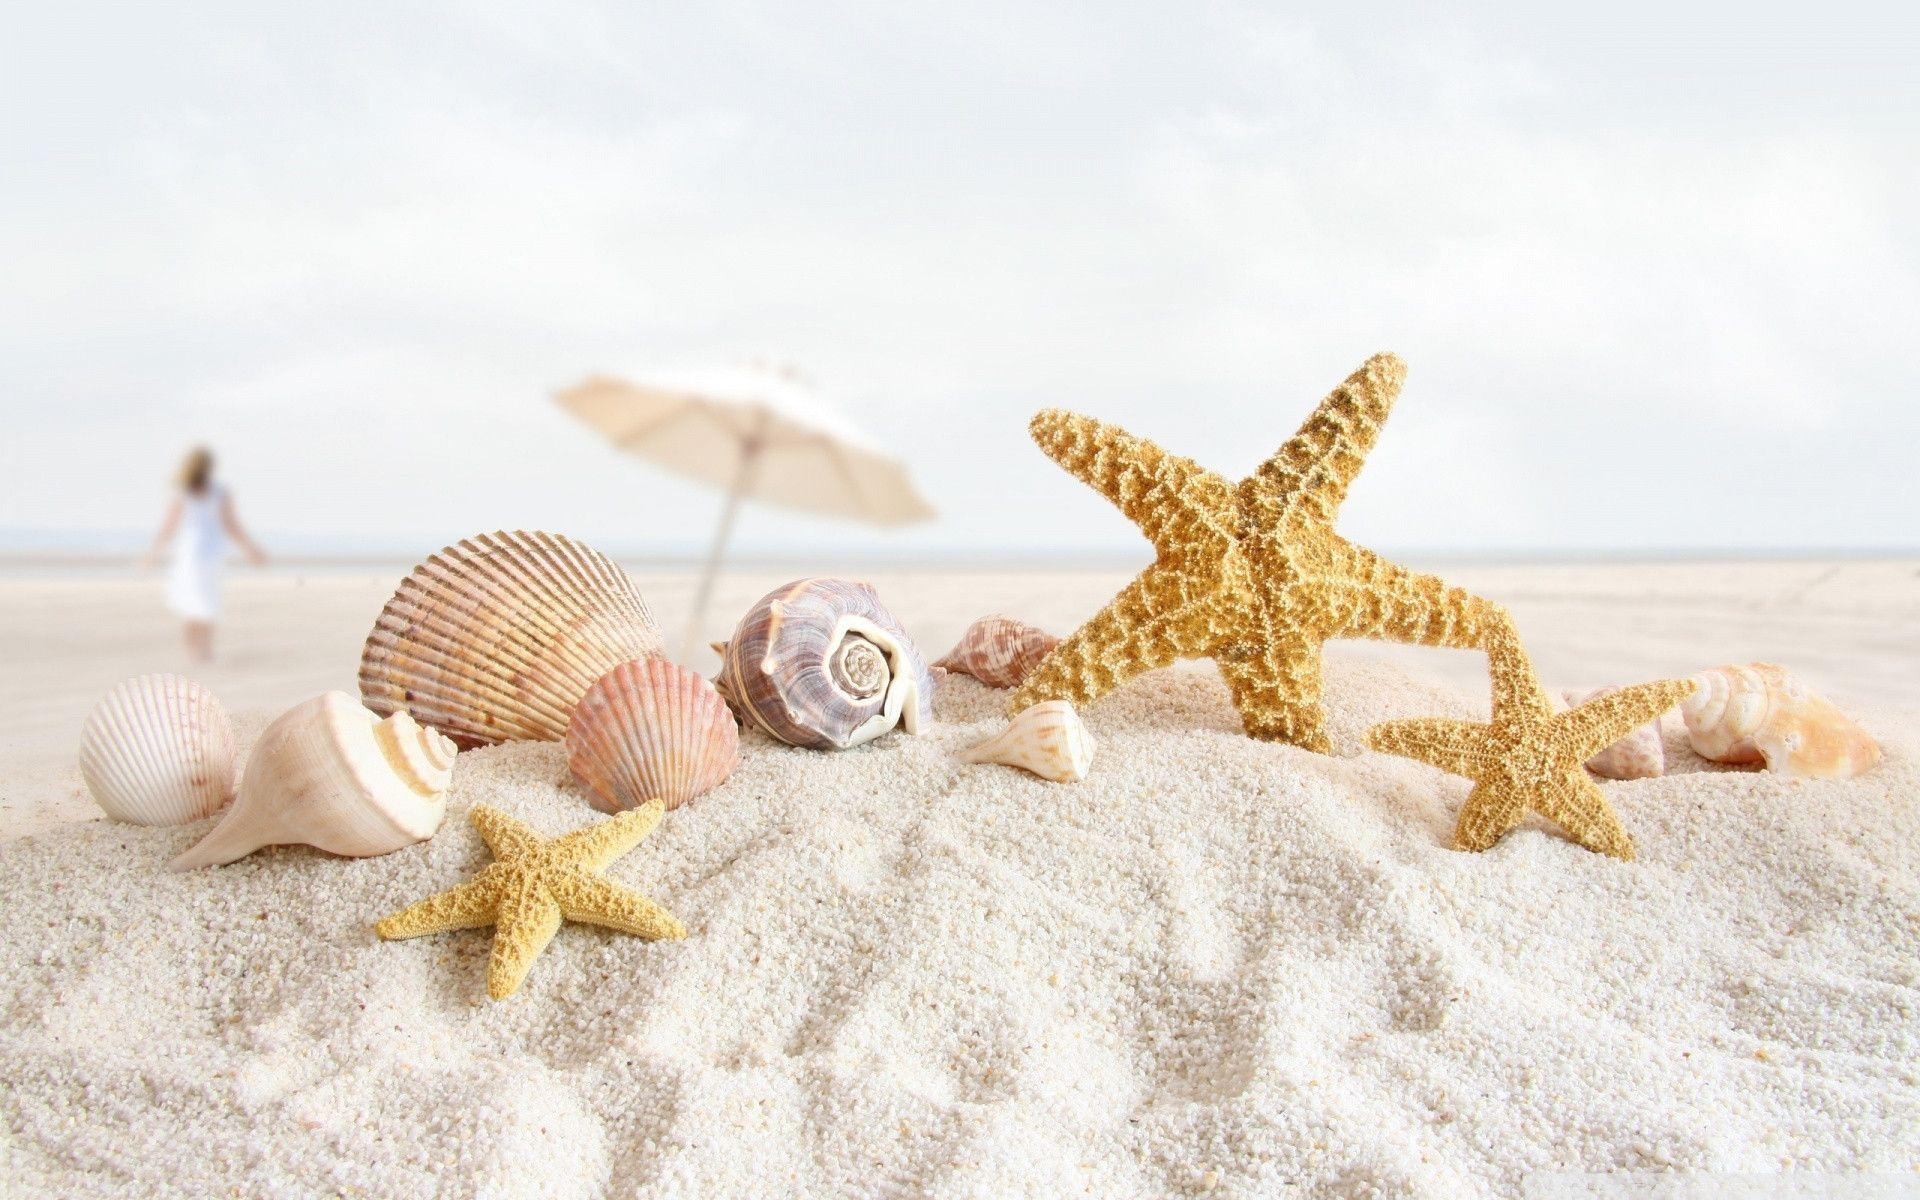 You are viewing the animal wallpapers named Seashell and starsfish